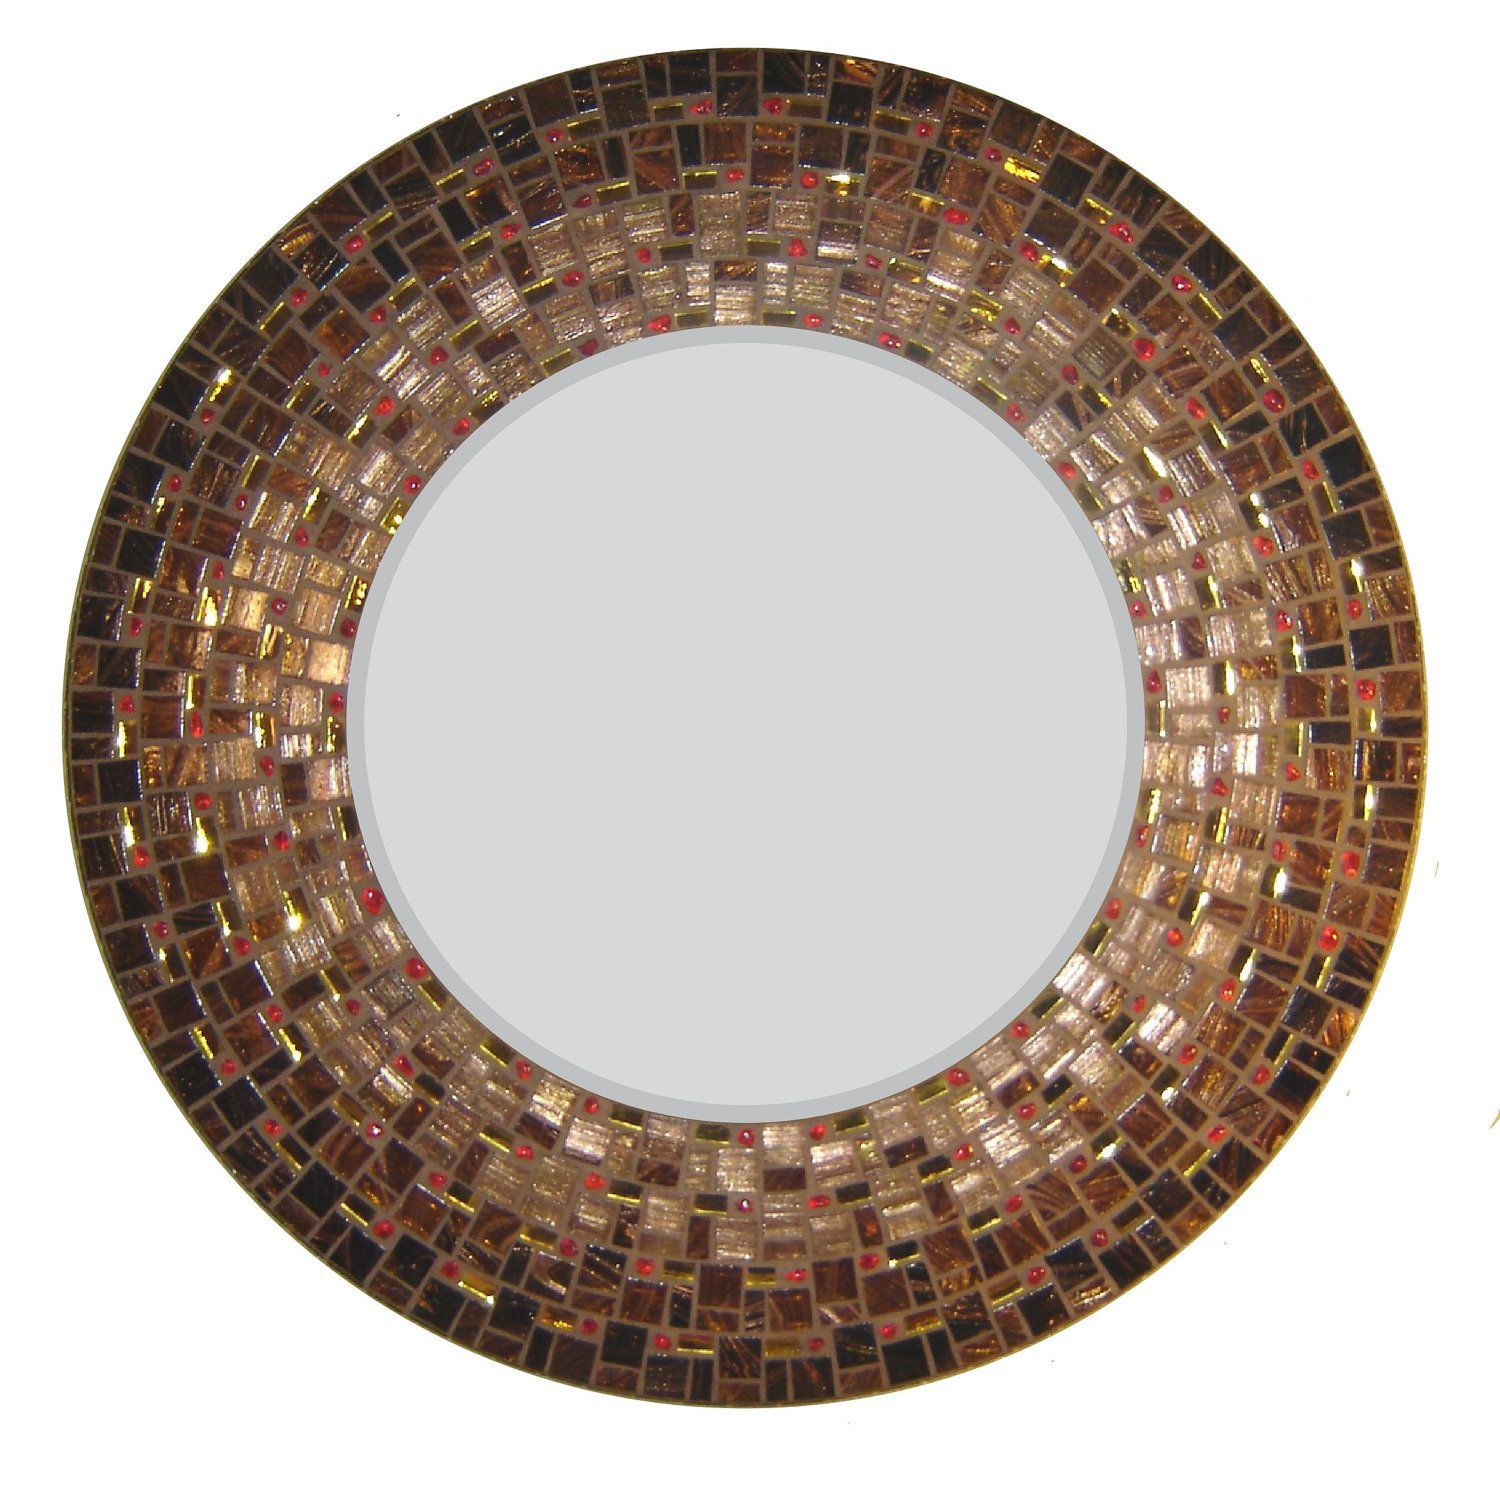 Moroccan mosaic mirror brown copper gold u red by opusmosaics